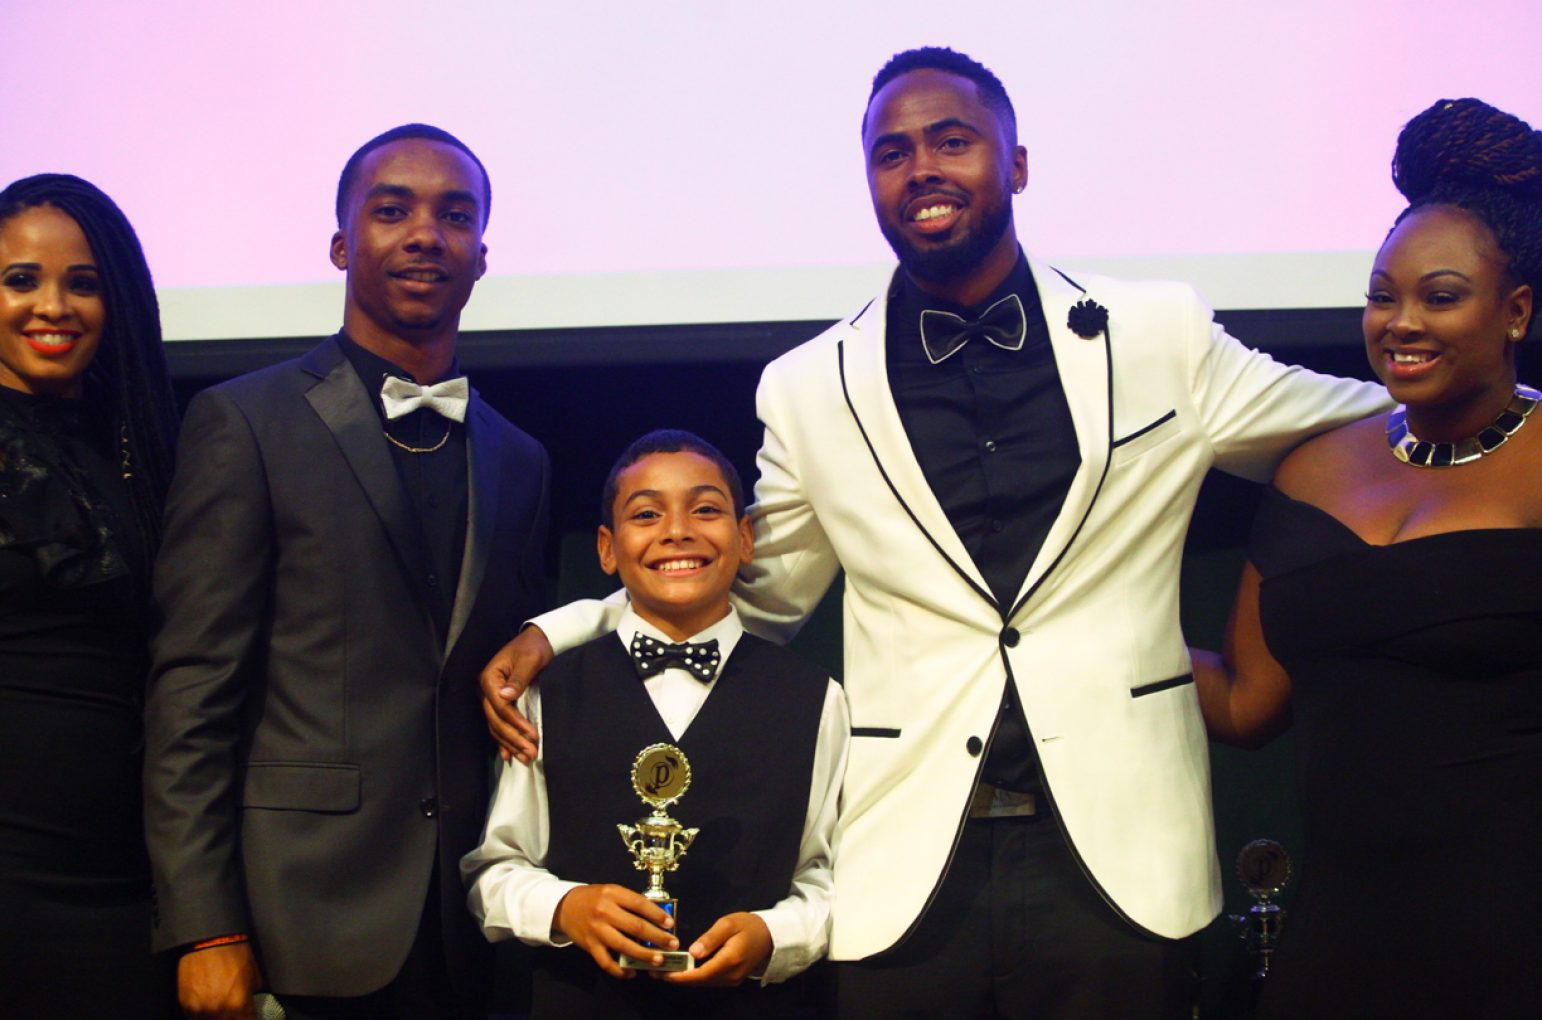 Chad Martinez, center, was one the 17 scholarship recipients awarded by Project Optimism at its first Black & White Gala on July 9 in the University Union Redwood Room at Sacramento State. (Photo by Nicole Fowler)